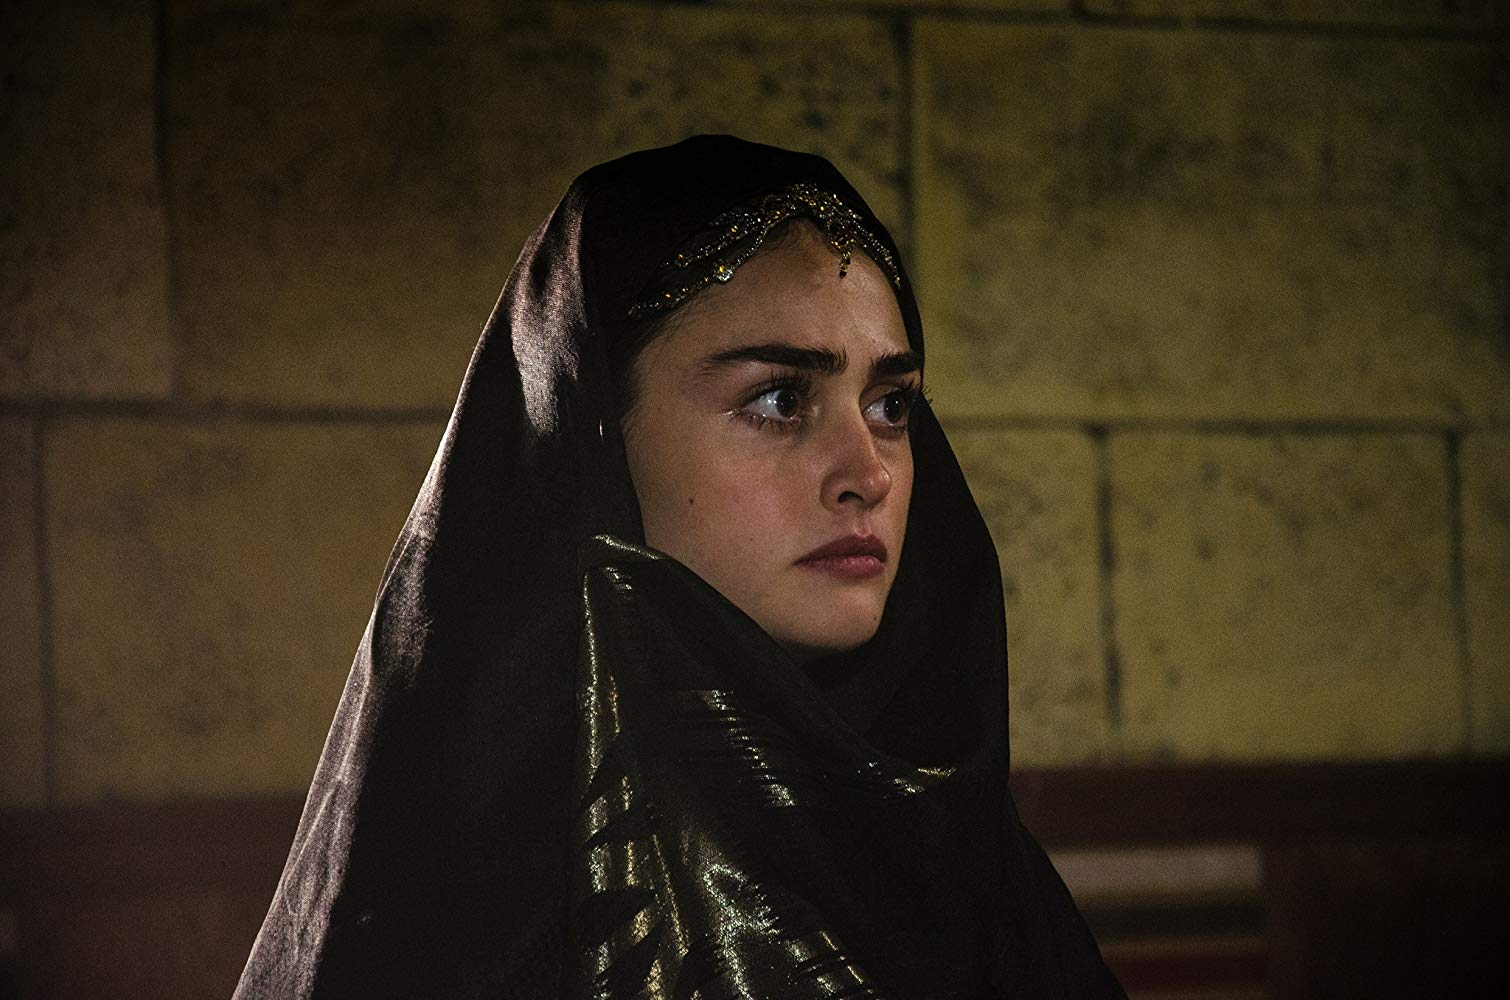 Pictures of Esra bilgic aka Halime Sultan go viral as Ertugrul Ghazi airs on PTV 5 Halime Hatun 11